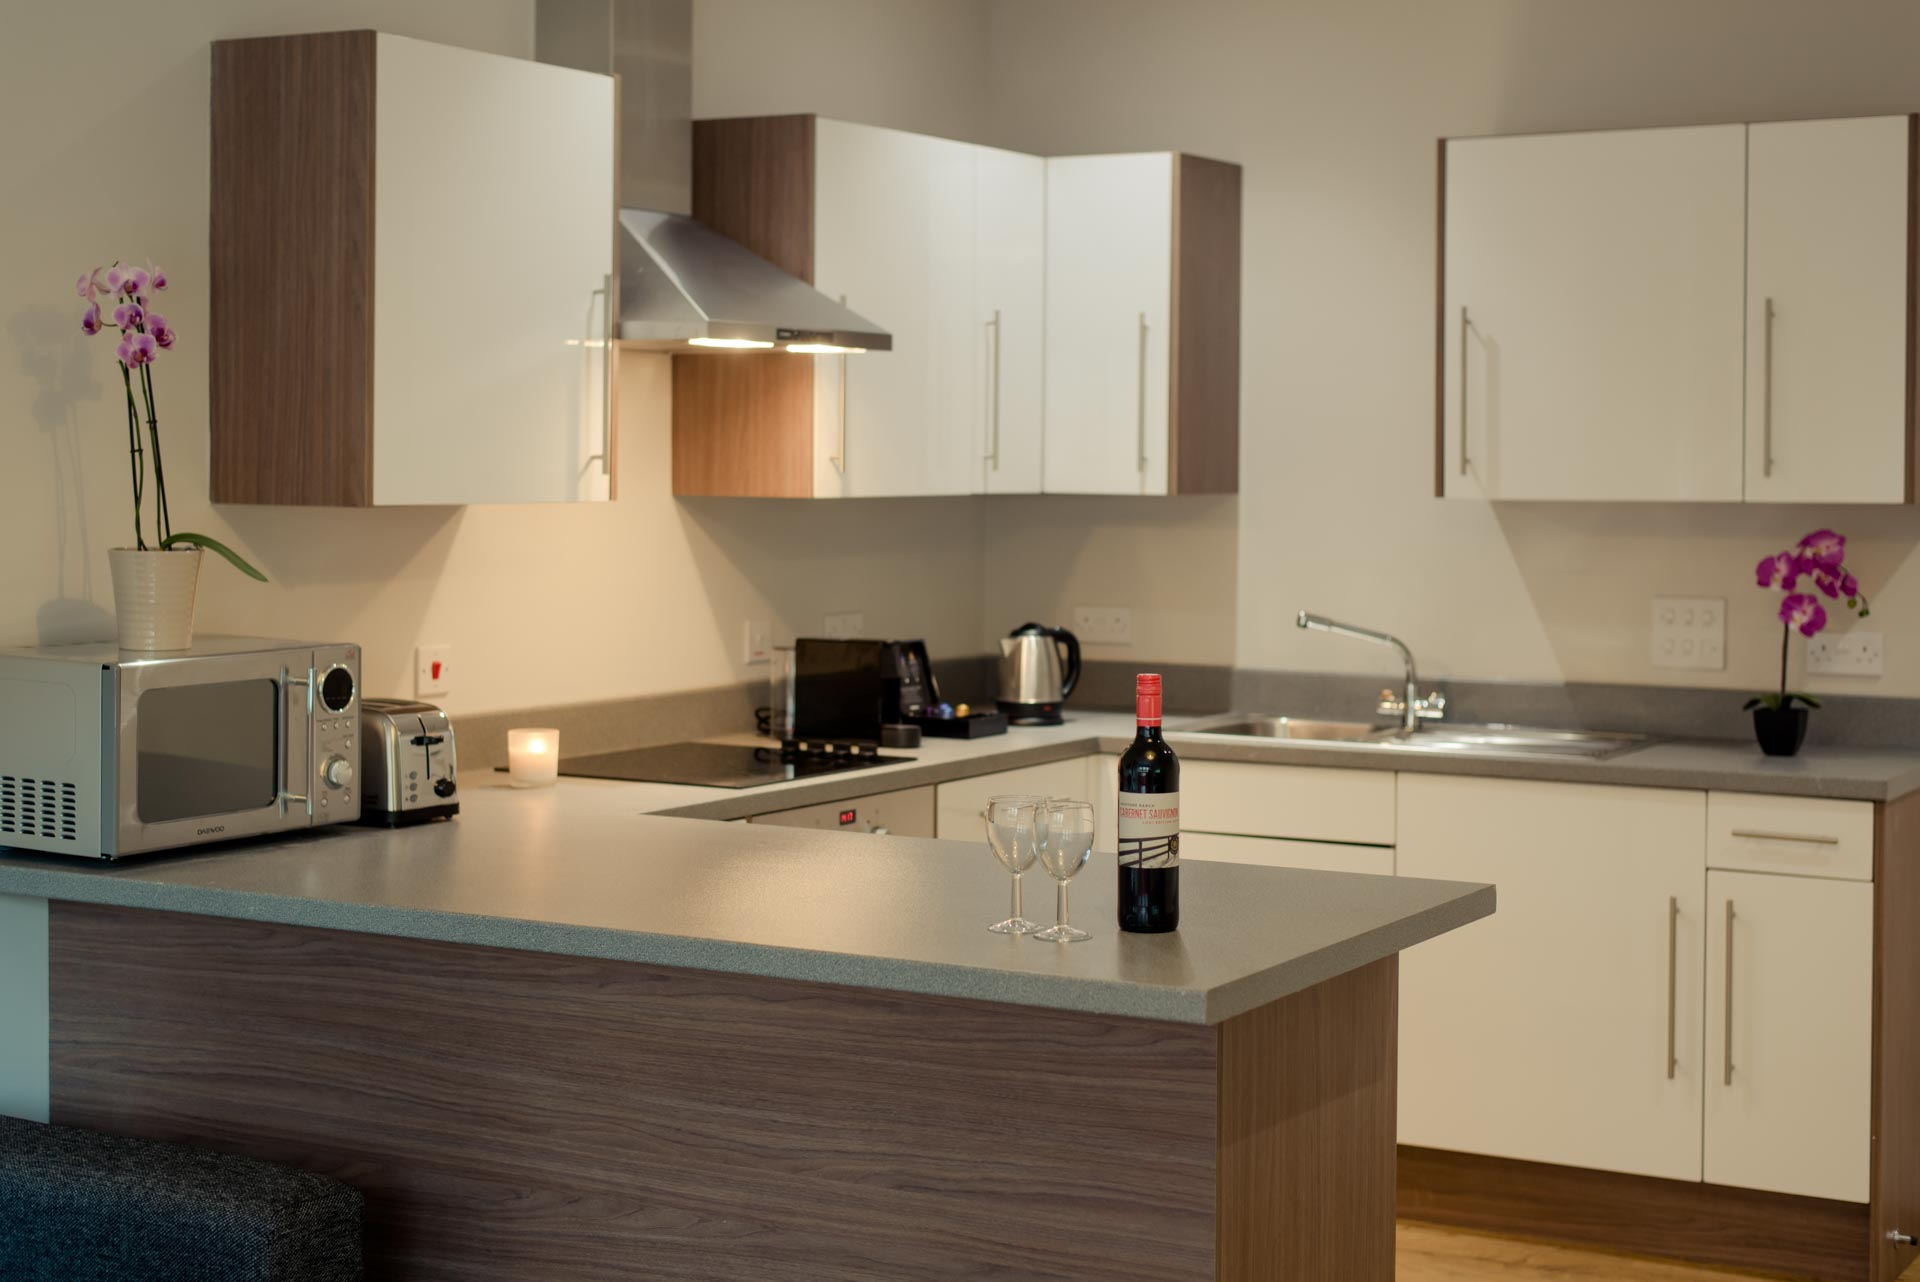 Kitchen counter top with red wine and glasses PREMIER SUITES PLUS Glasgow Bath Street